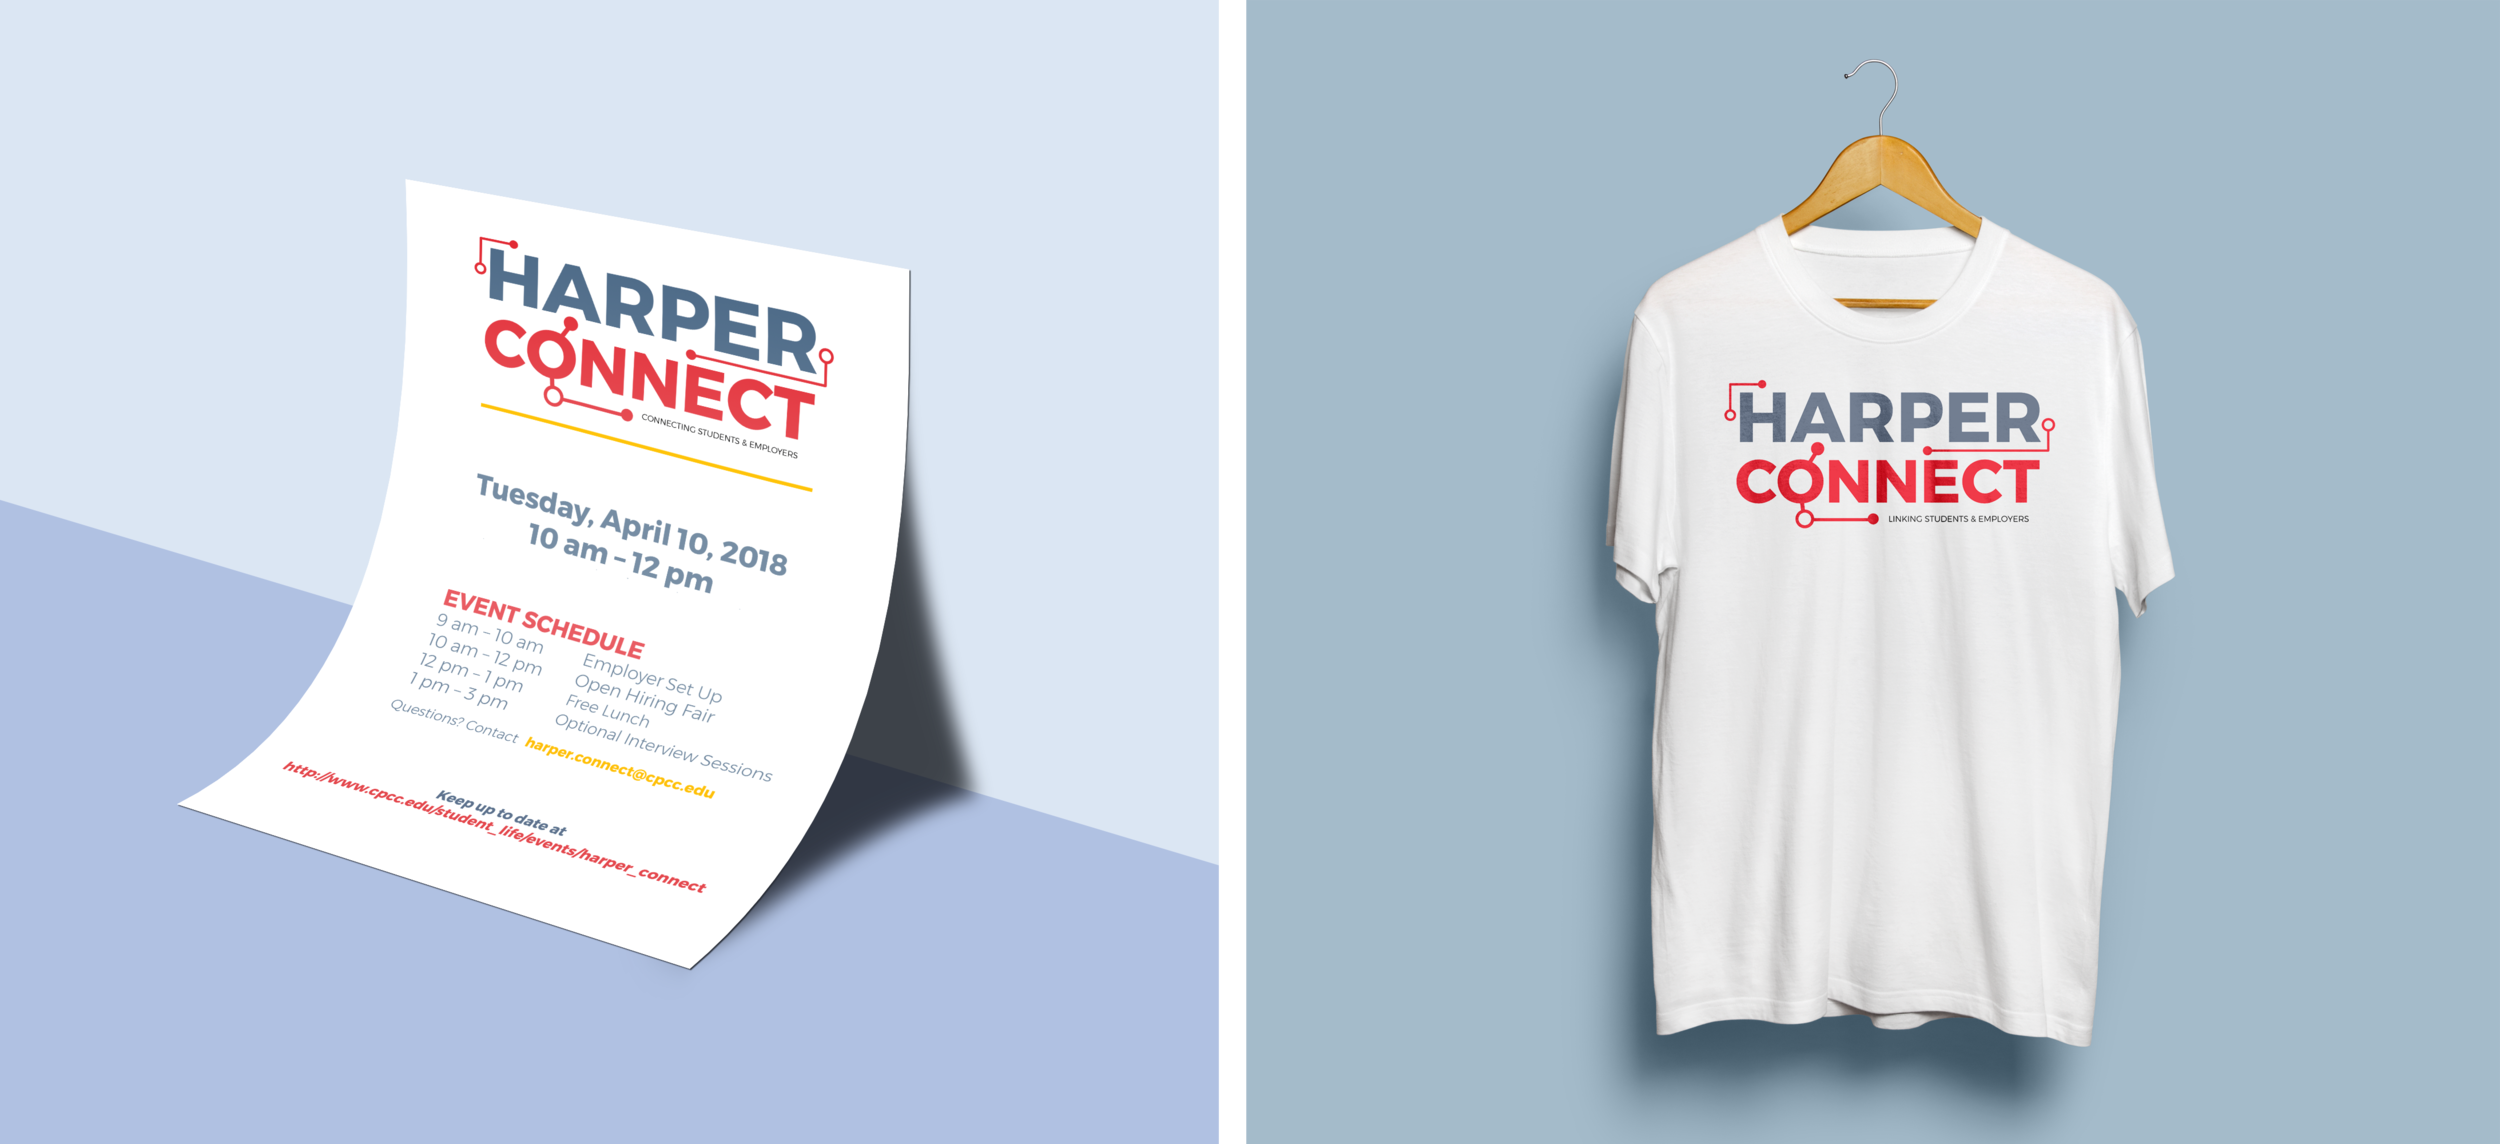 Flyer & t-shirt design using the Harper Connect logo and colors.